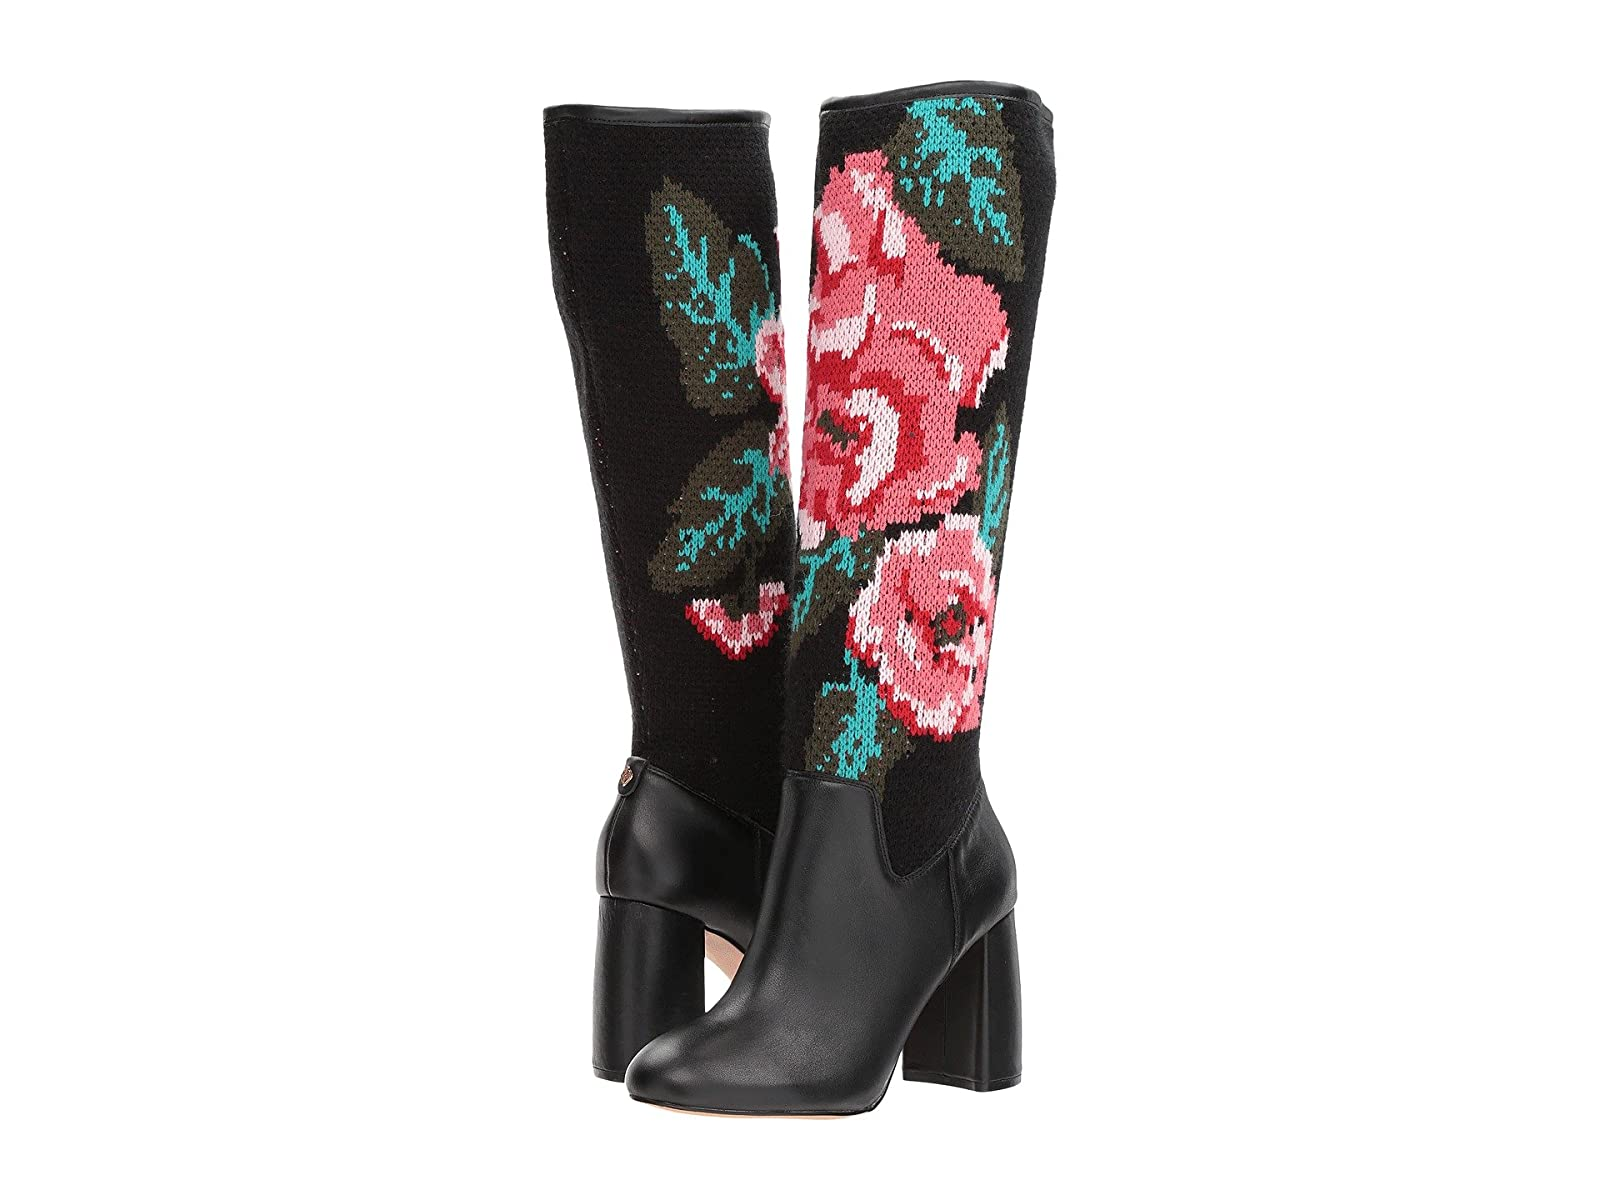 Nanette nanette lepore Leigh-NLCheap and distinctive eye-catching shoes